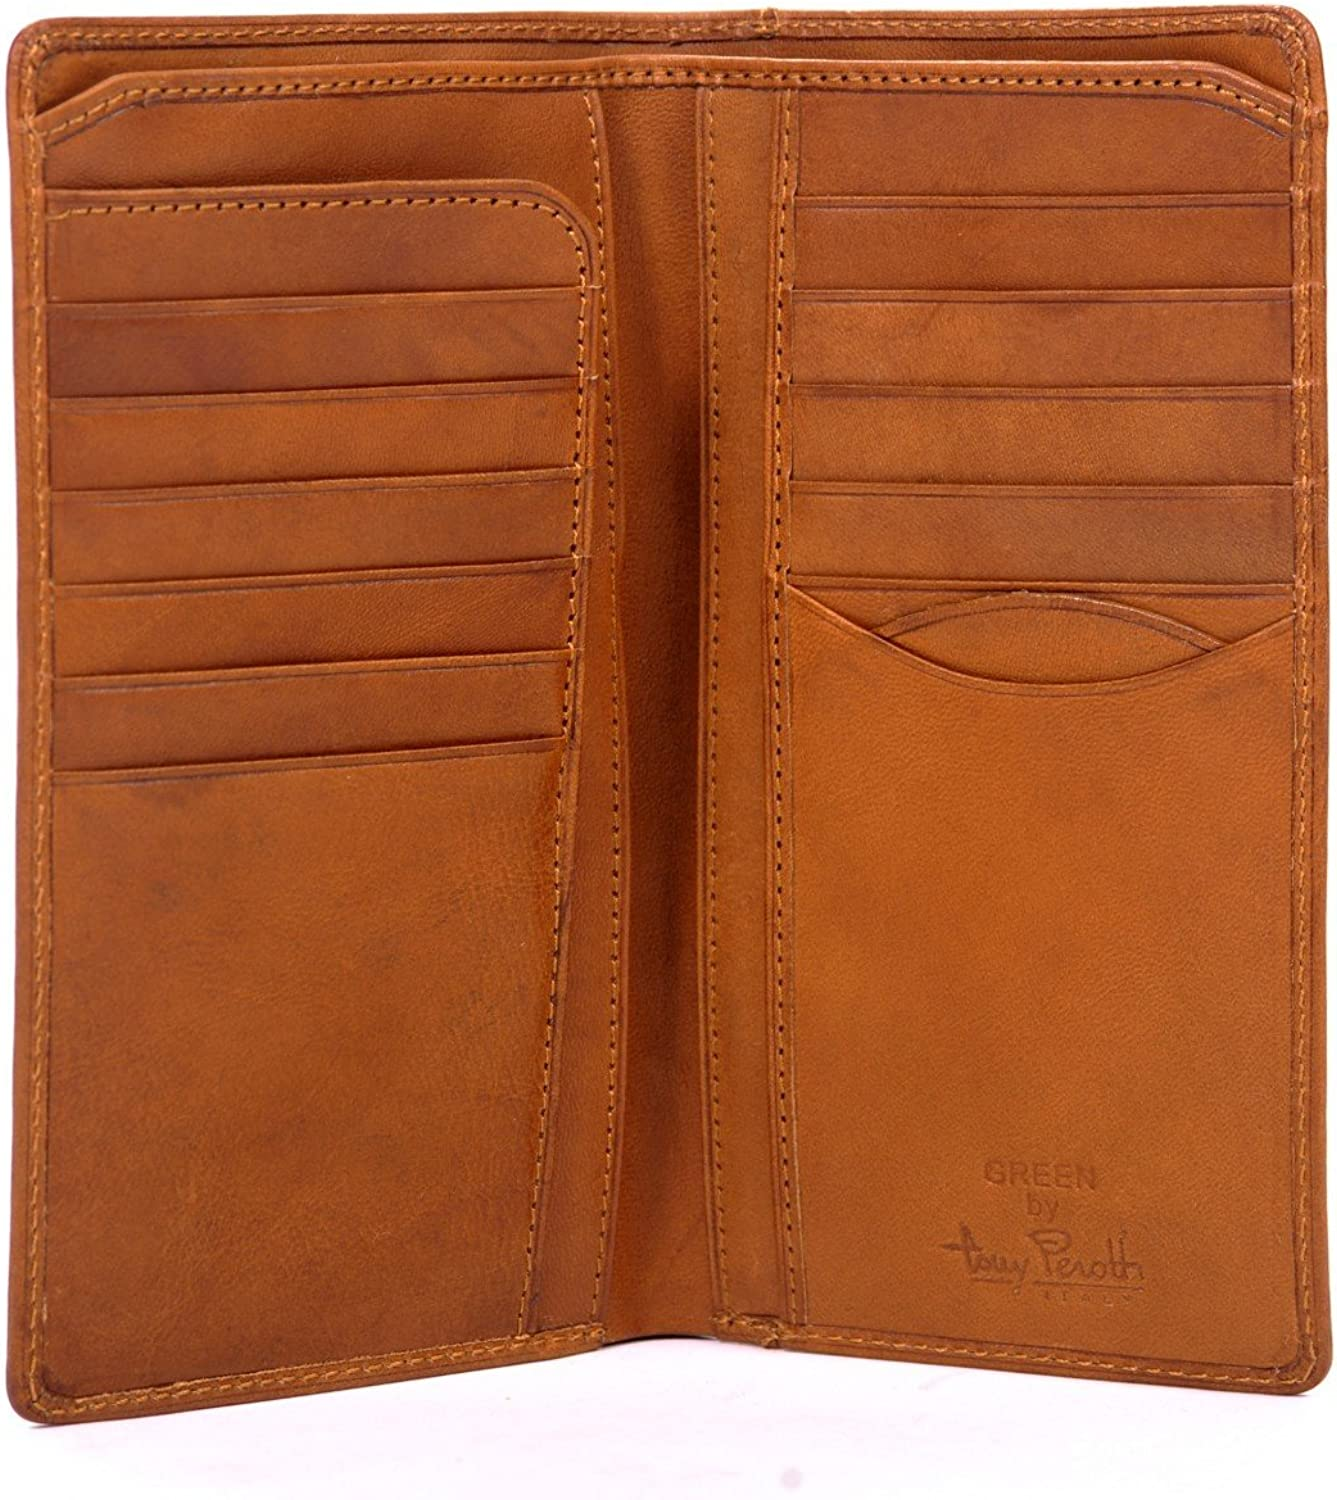 Italian Cow Leather Bifold Checkbook Breast Pocket Wallet with ID Window Multi Business & Credit Card Slots